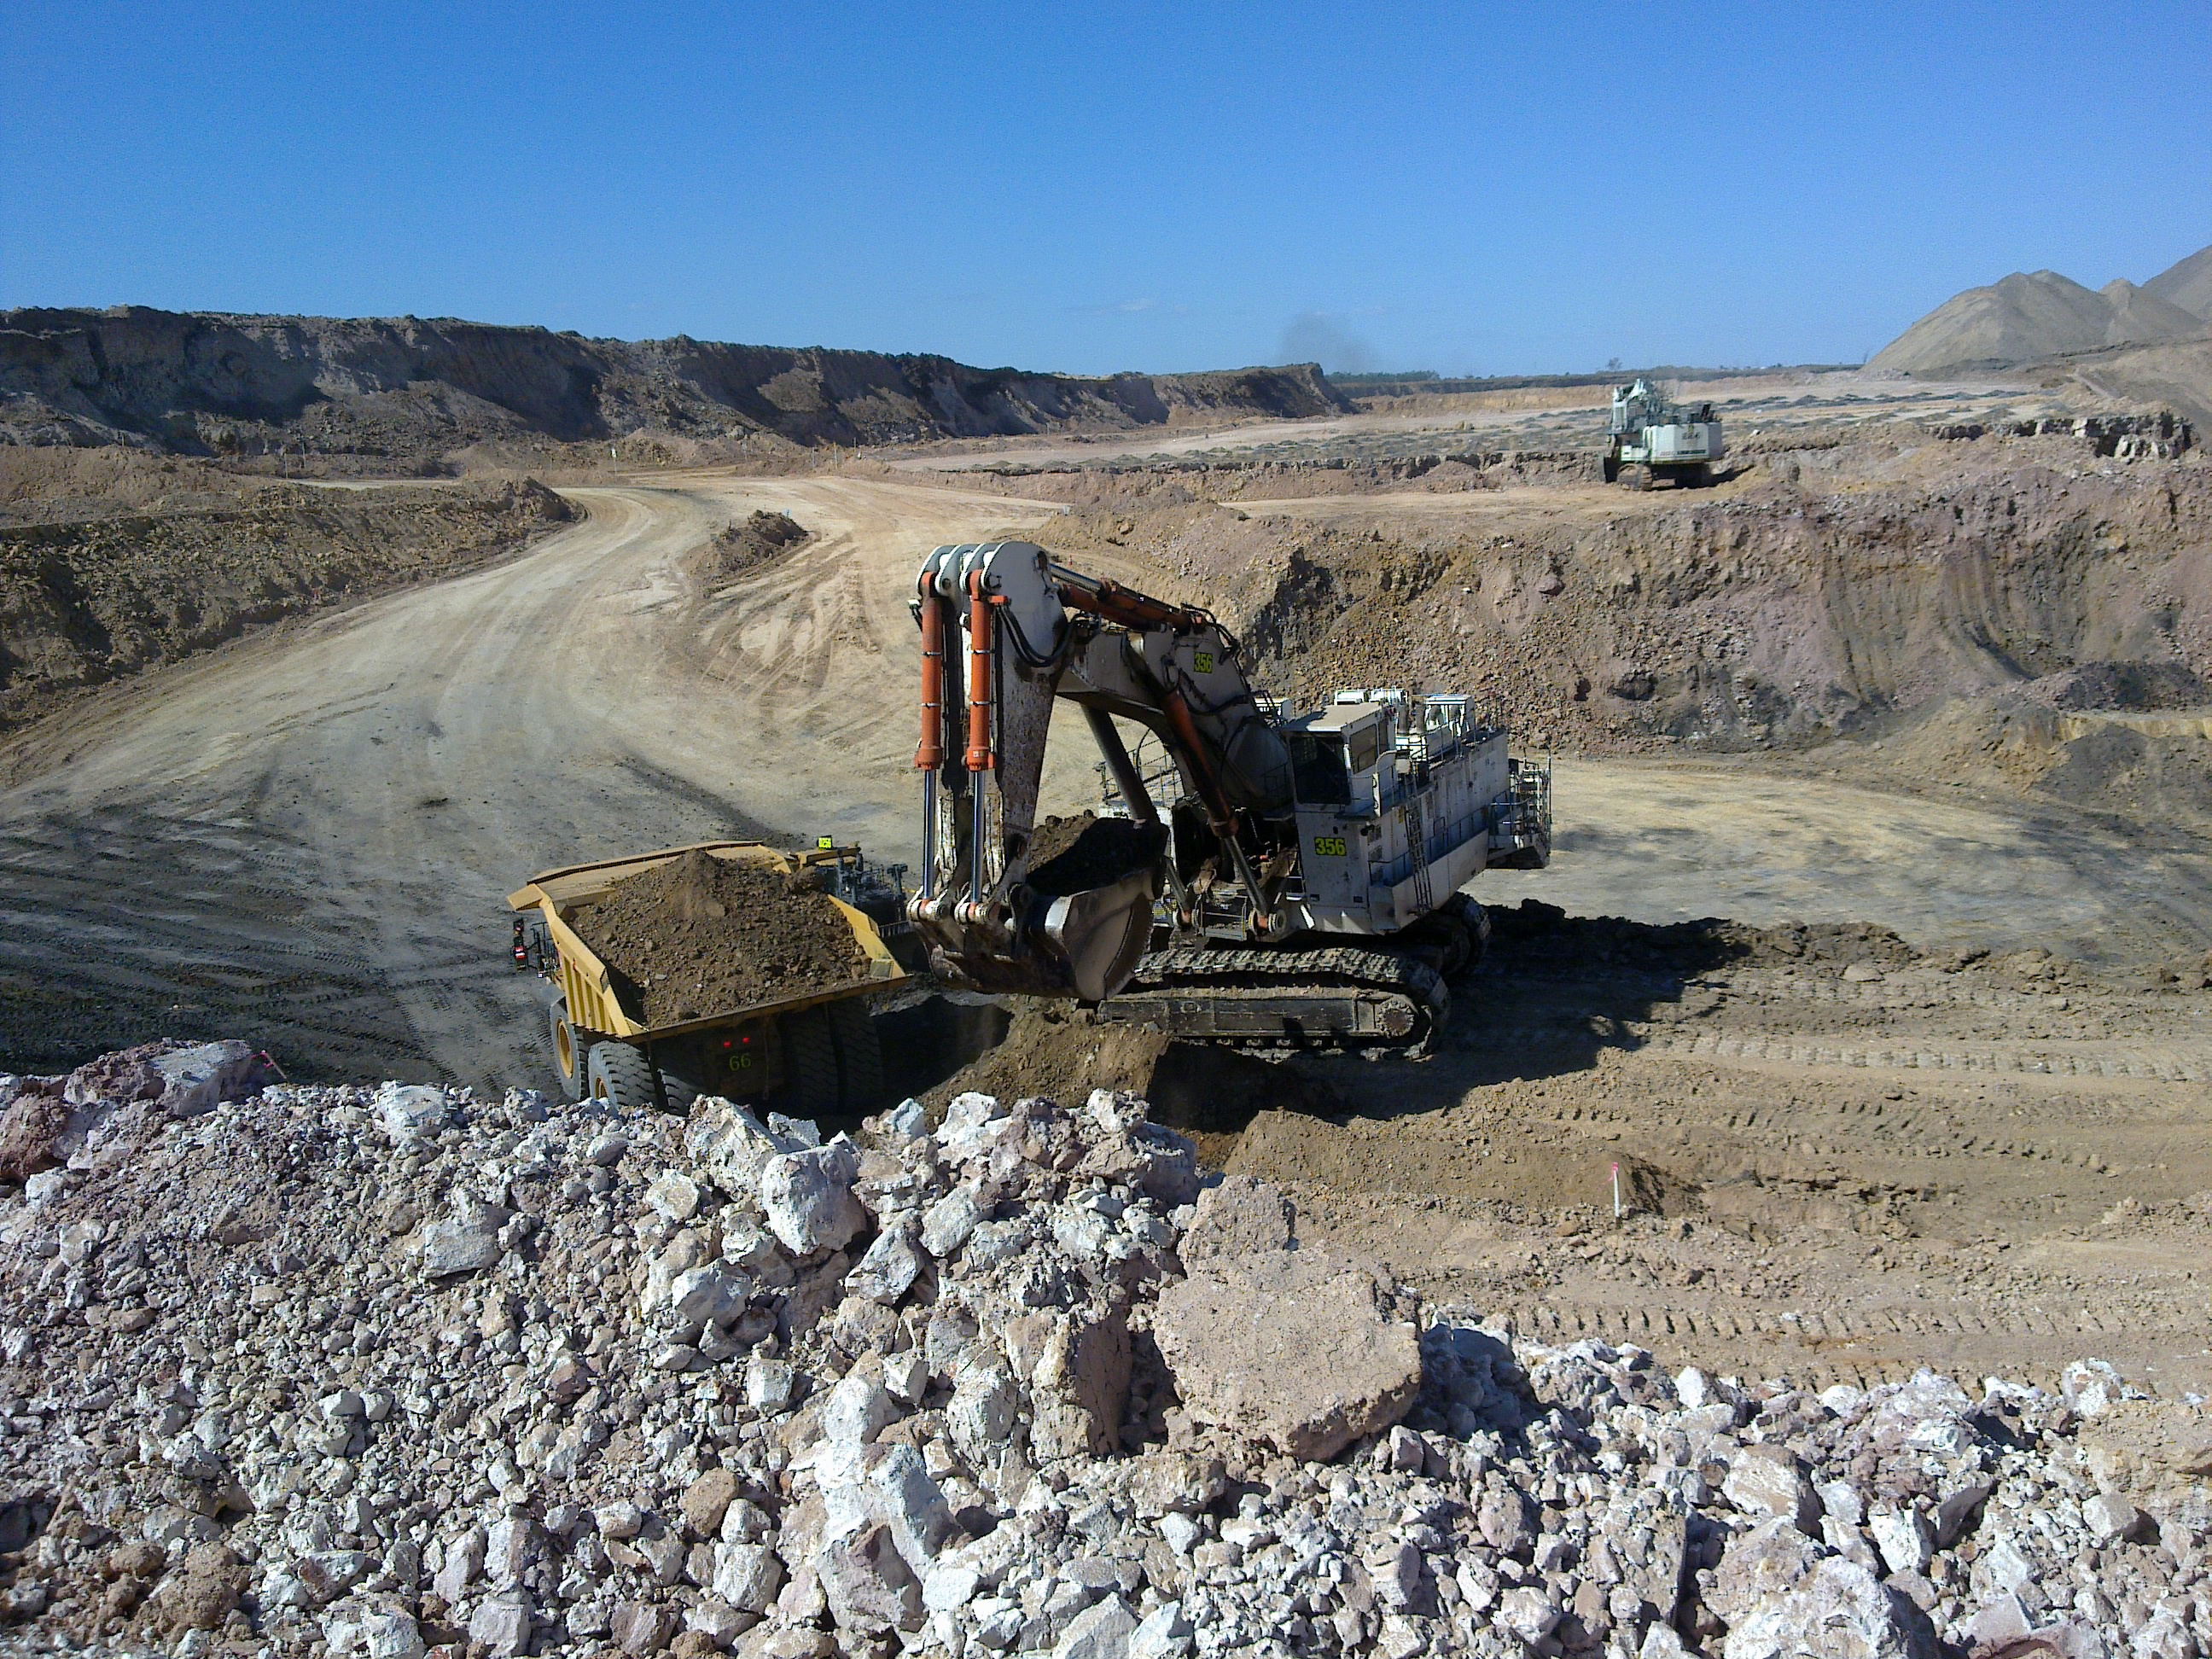 Experienced Mobile Plant Mining Operators Bowen Basin Mine-iMINCO.net Mining Information